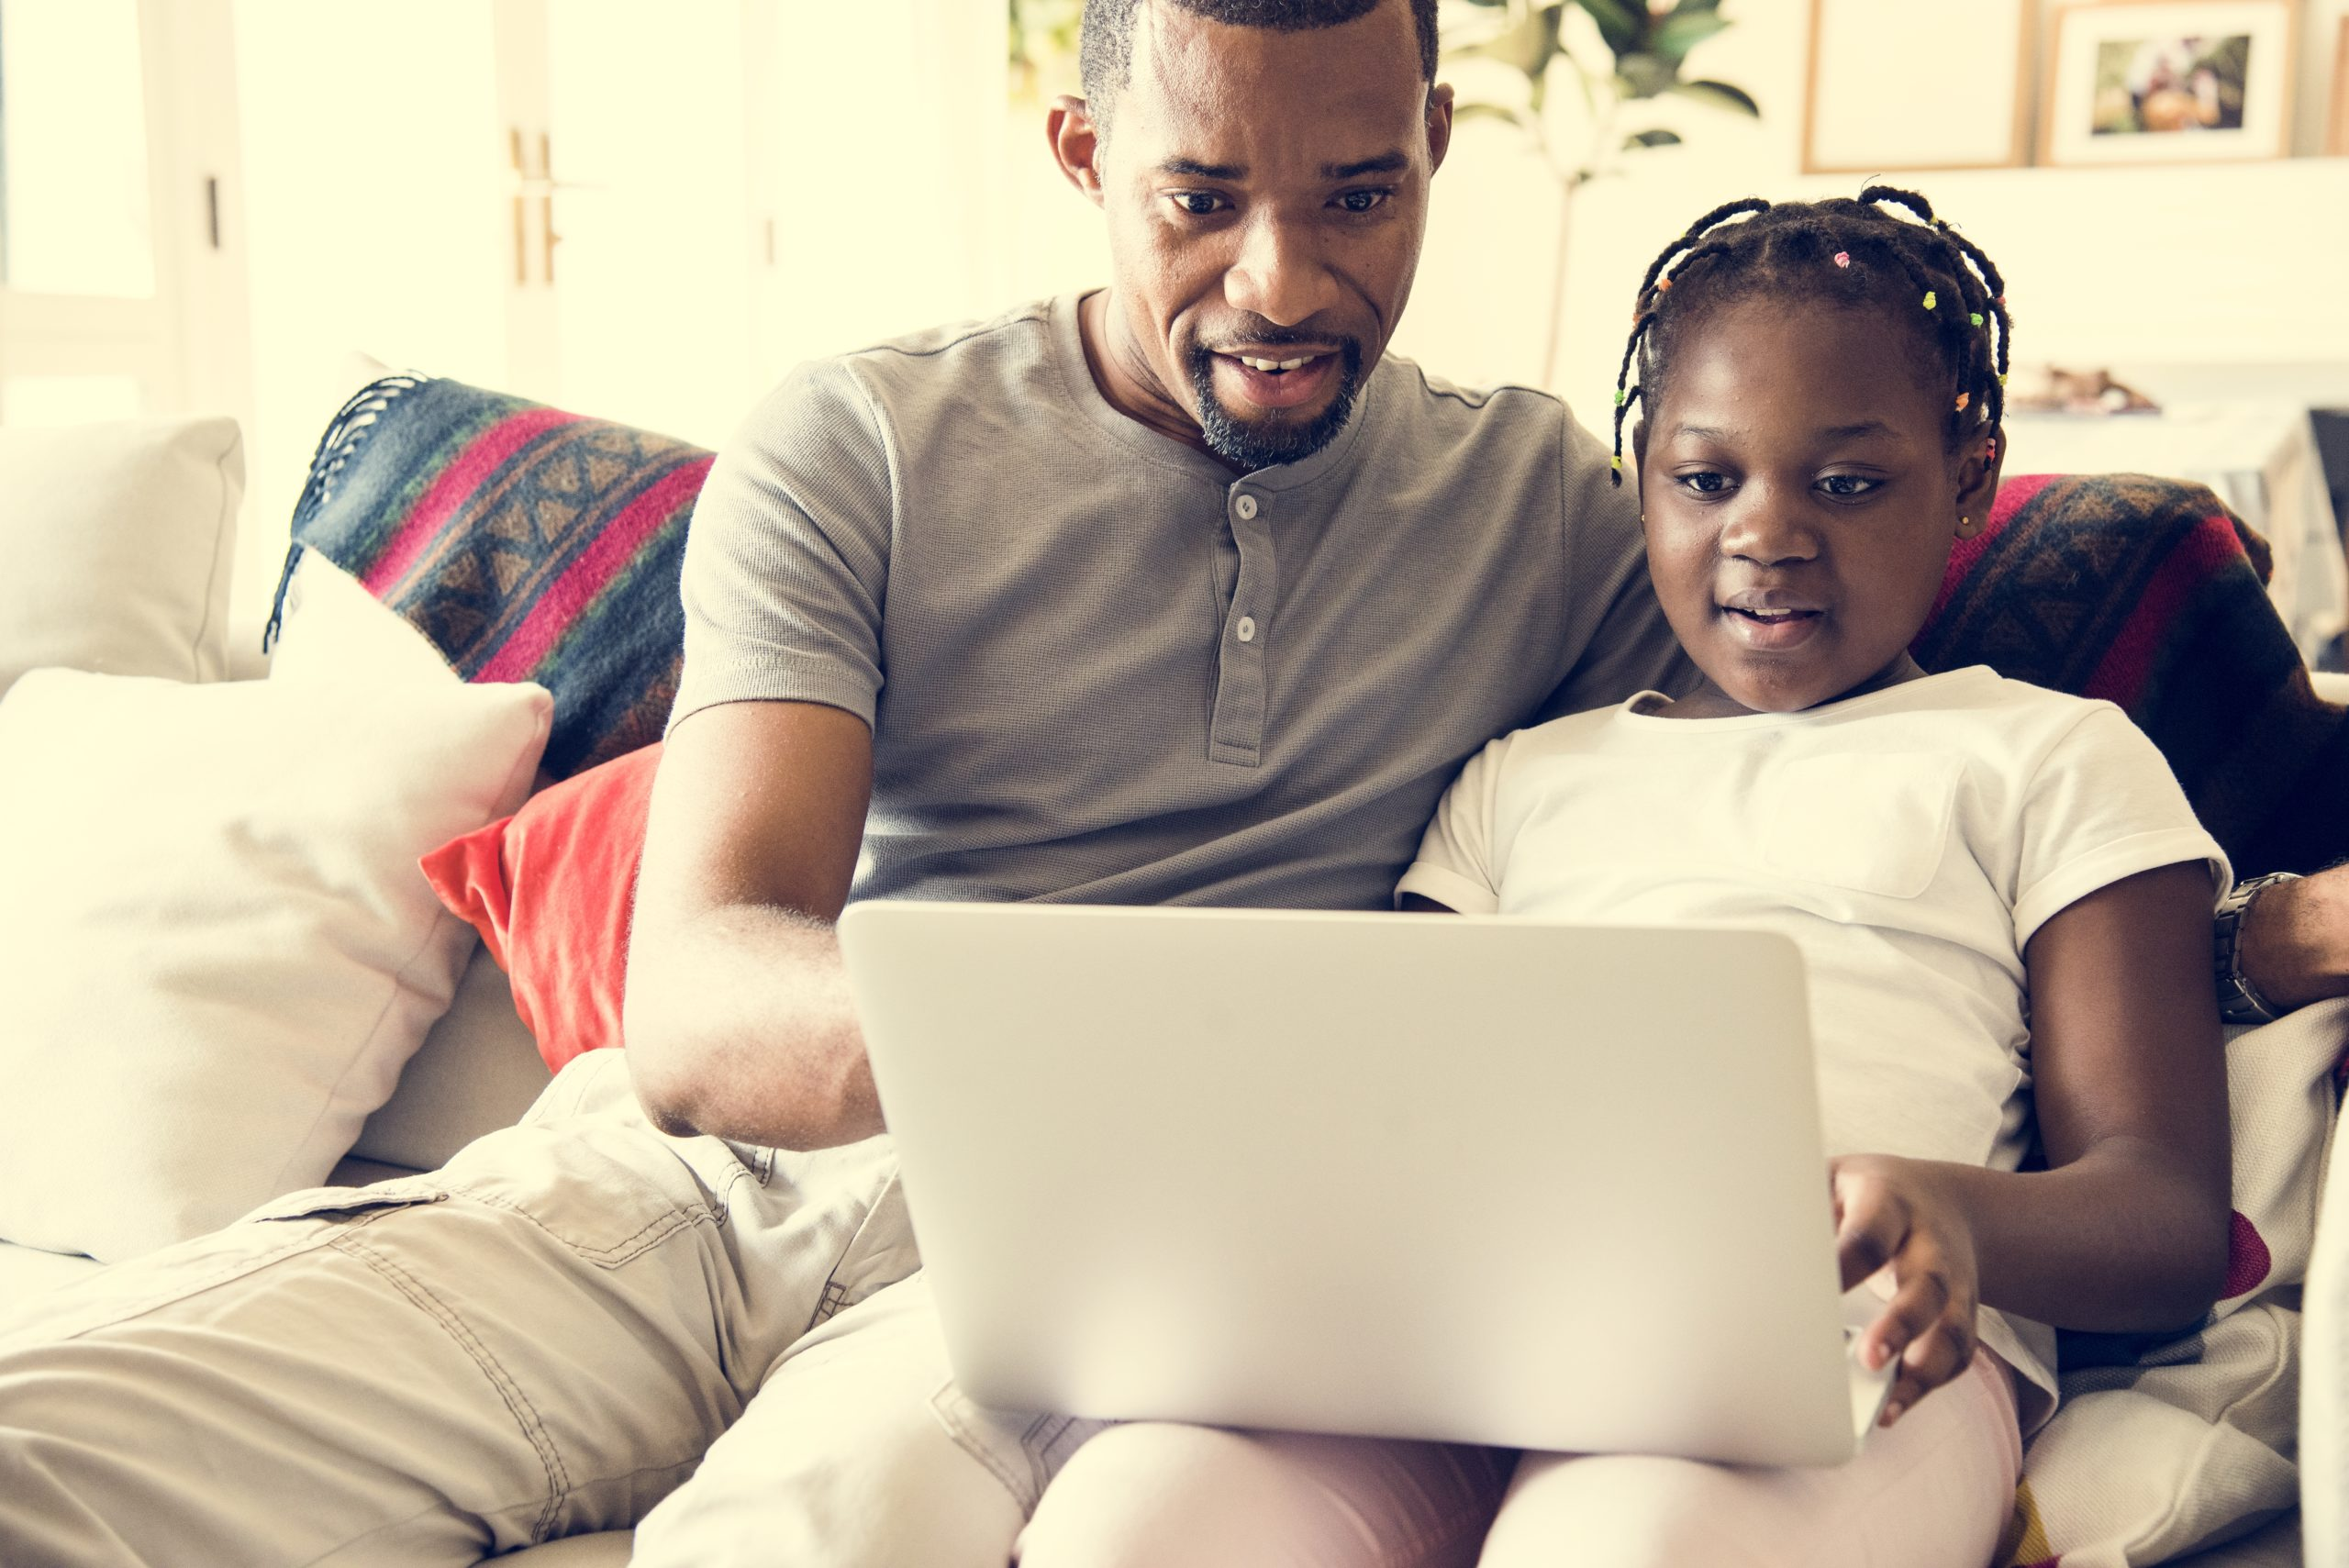 Father and daughter on the couch, looking at laptop